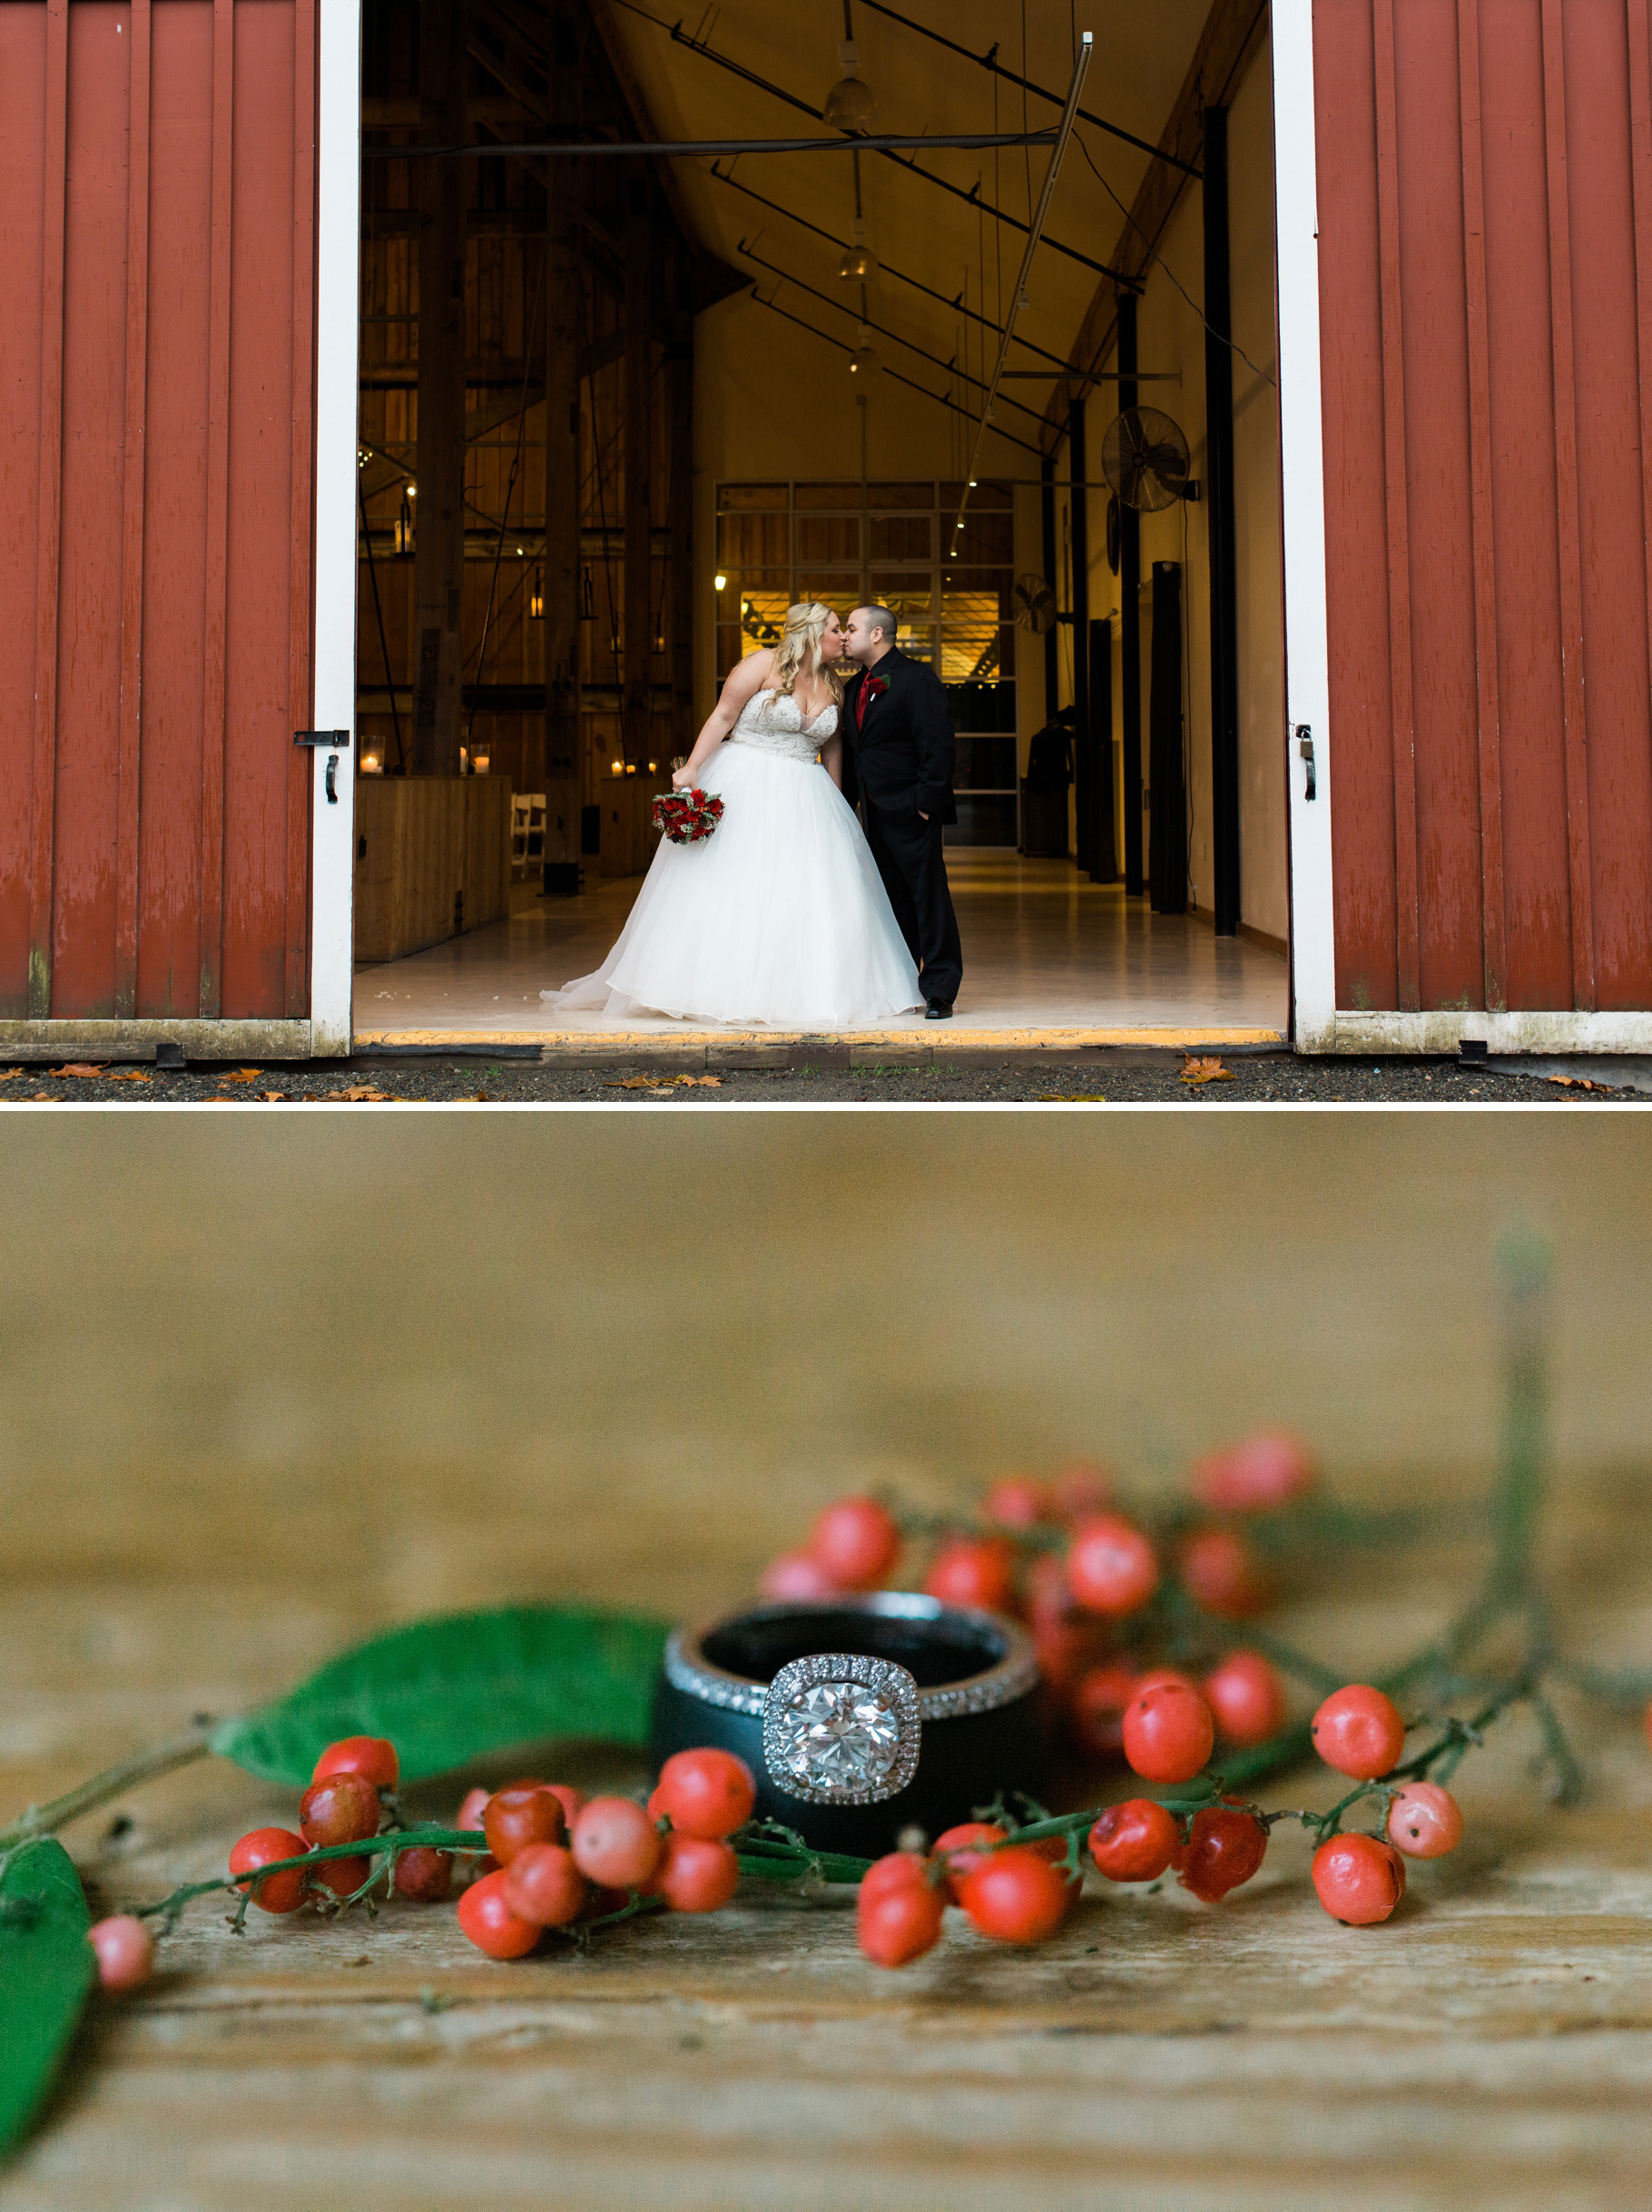 82-2015-Photographer-Year-in-Review-Pickering-Barn-IssaquahSeattle-Wedding-Photography-by-Betty-Elaine